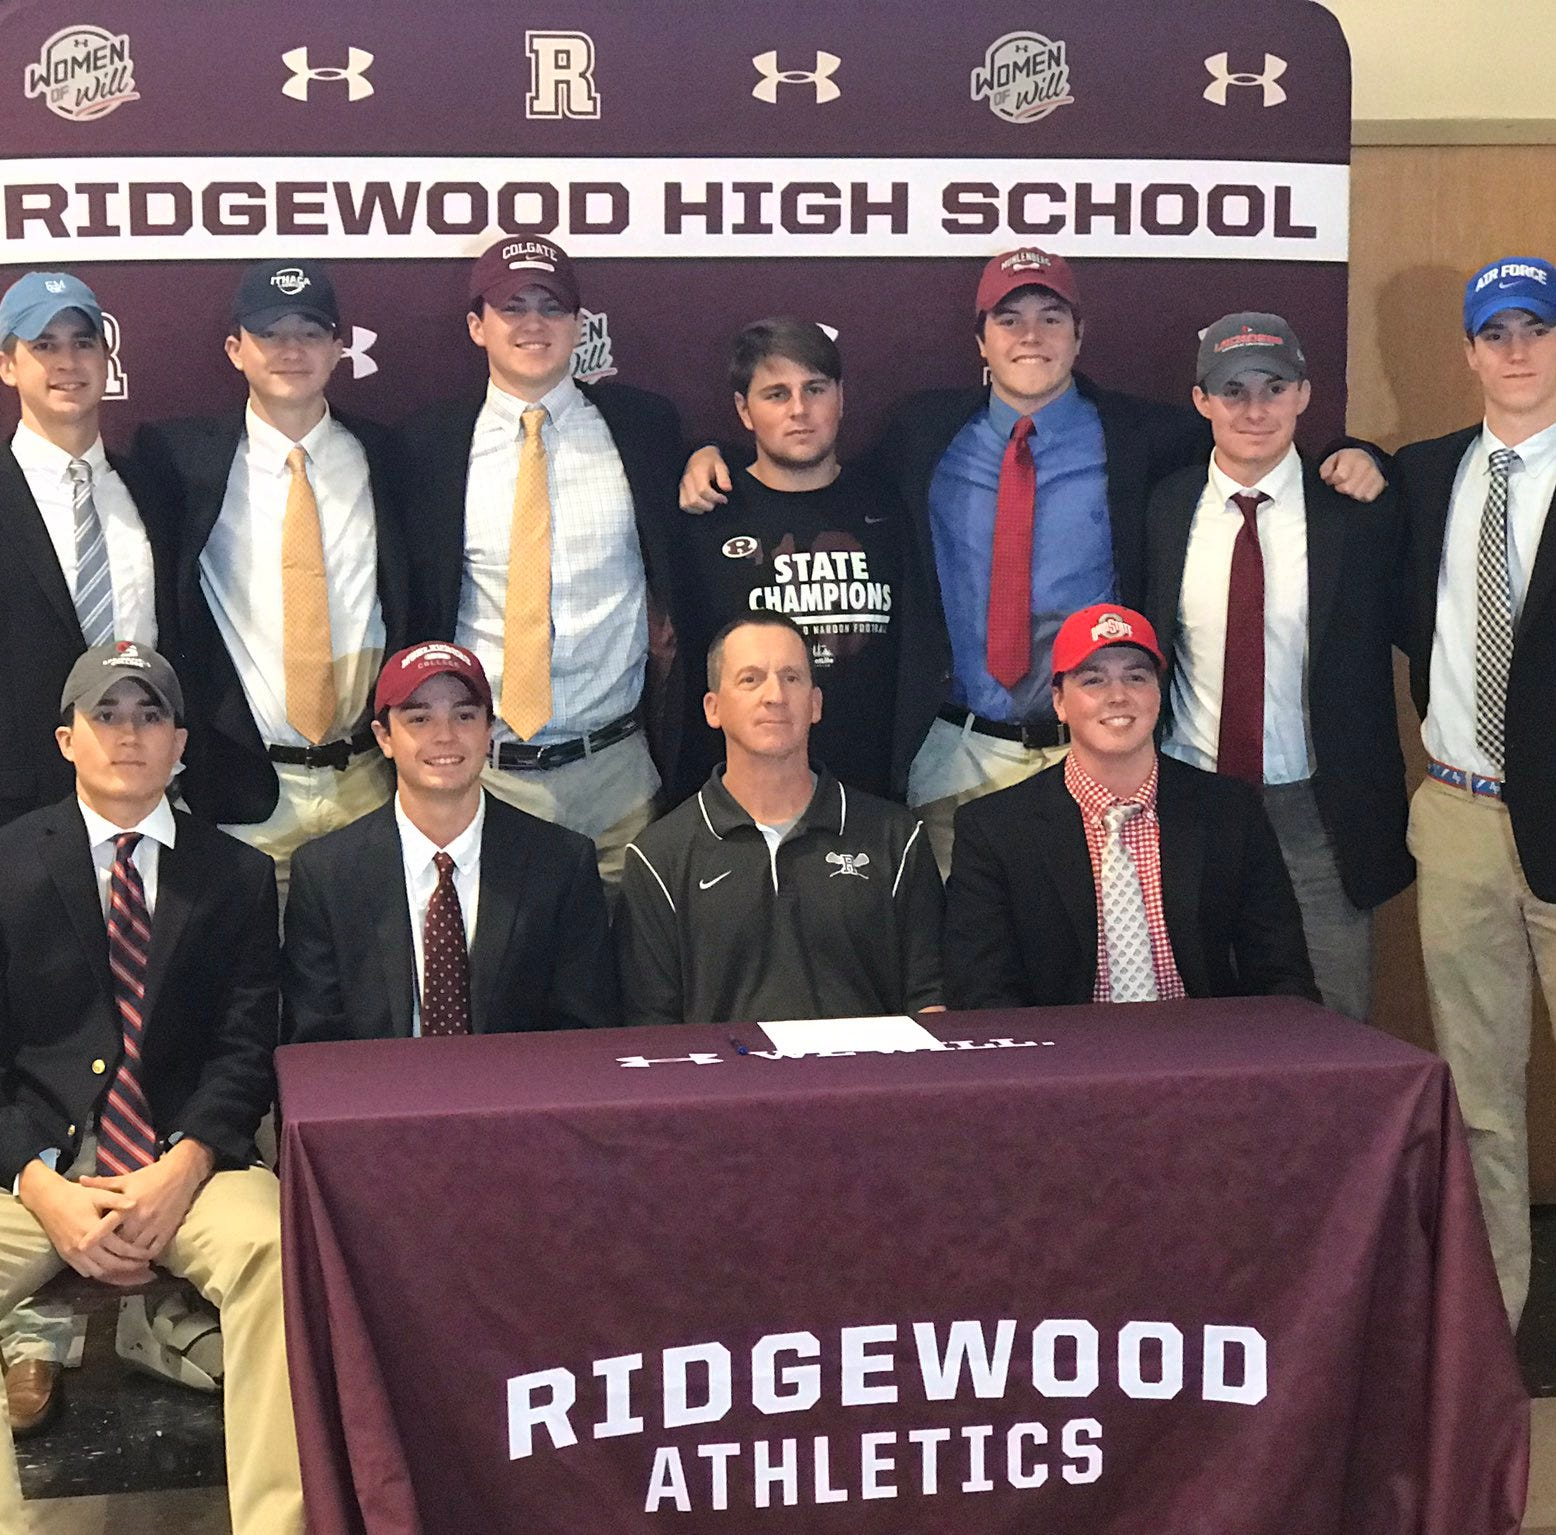 National Signing Day: 26 Ridgewood student-athletes sign letters of intent